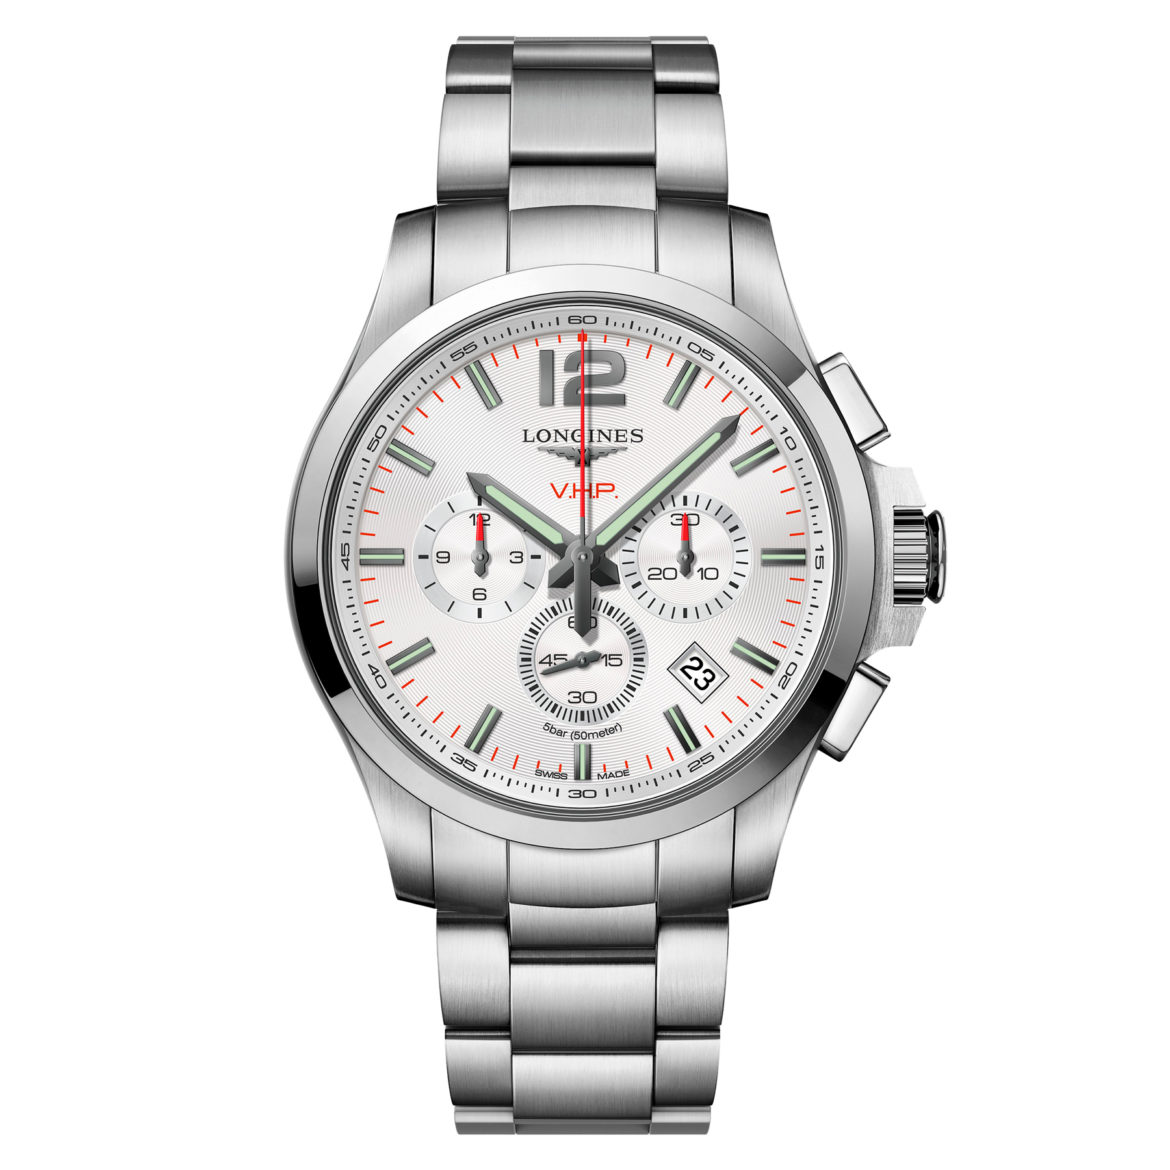 LONGINES</br/>Conquest VHP</br/>L37274766